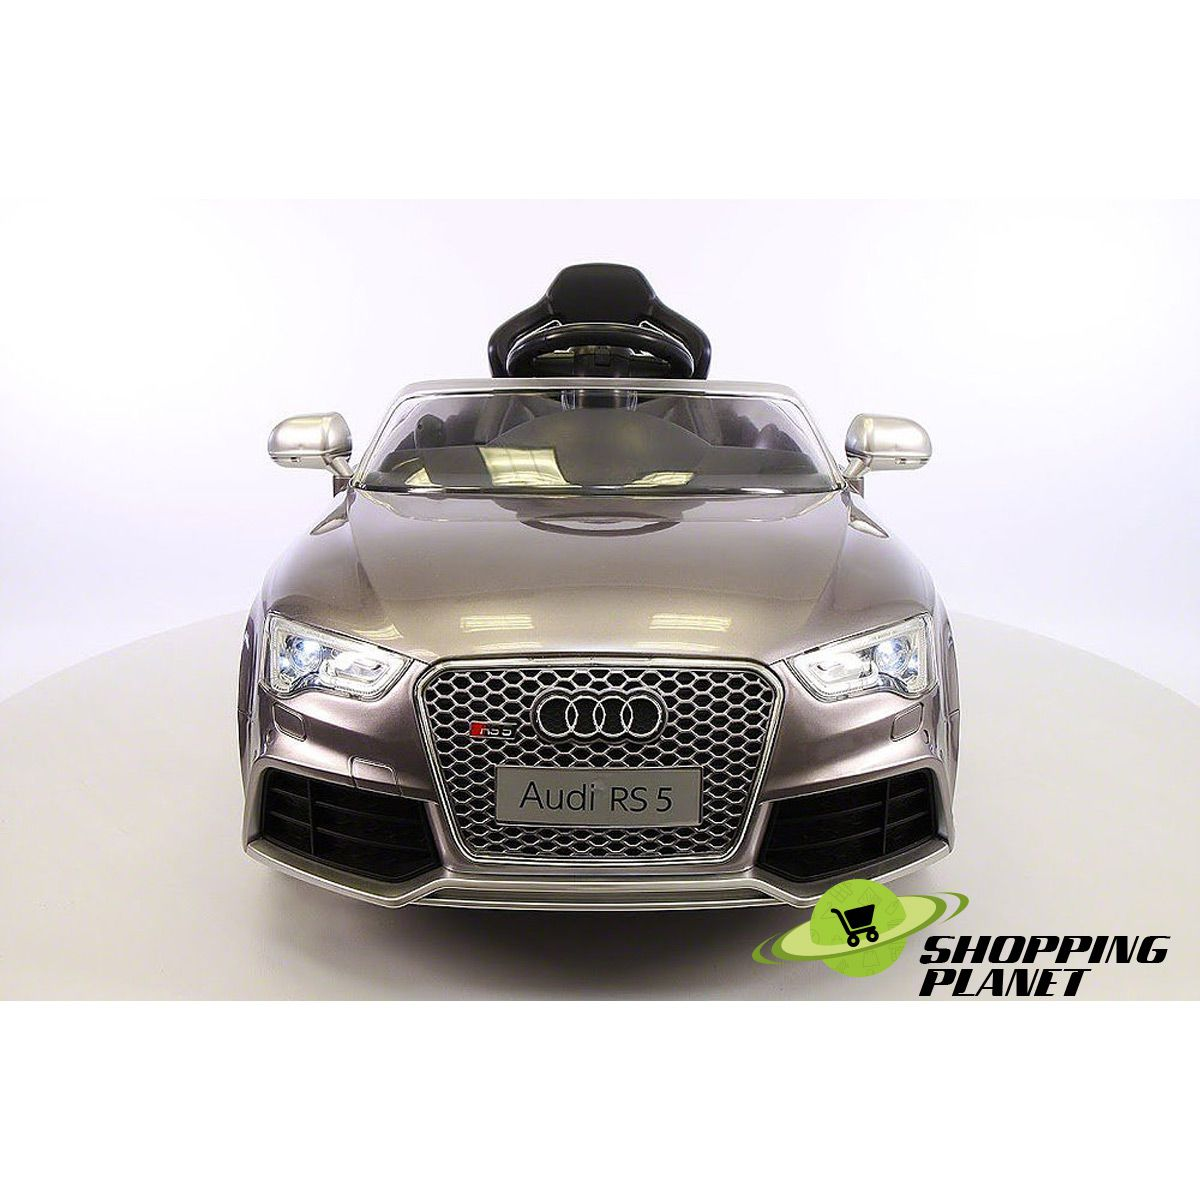 Audi RS5 12v Chargeable Battery Car for Kids